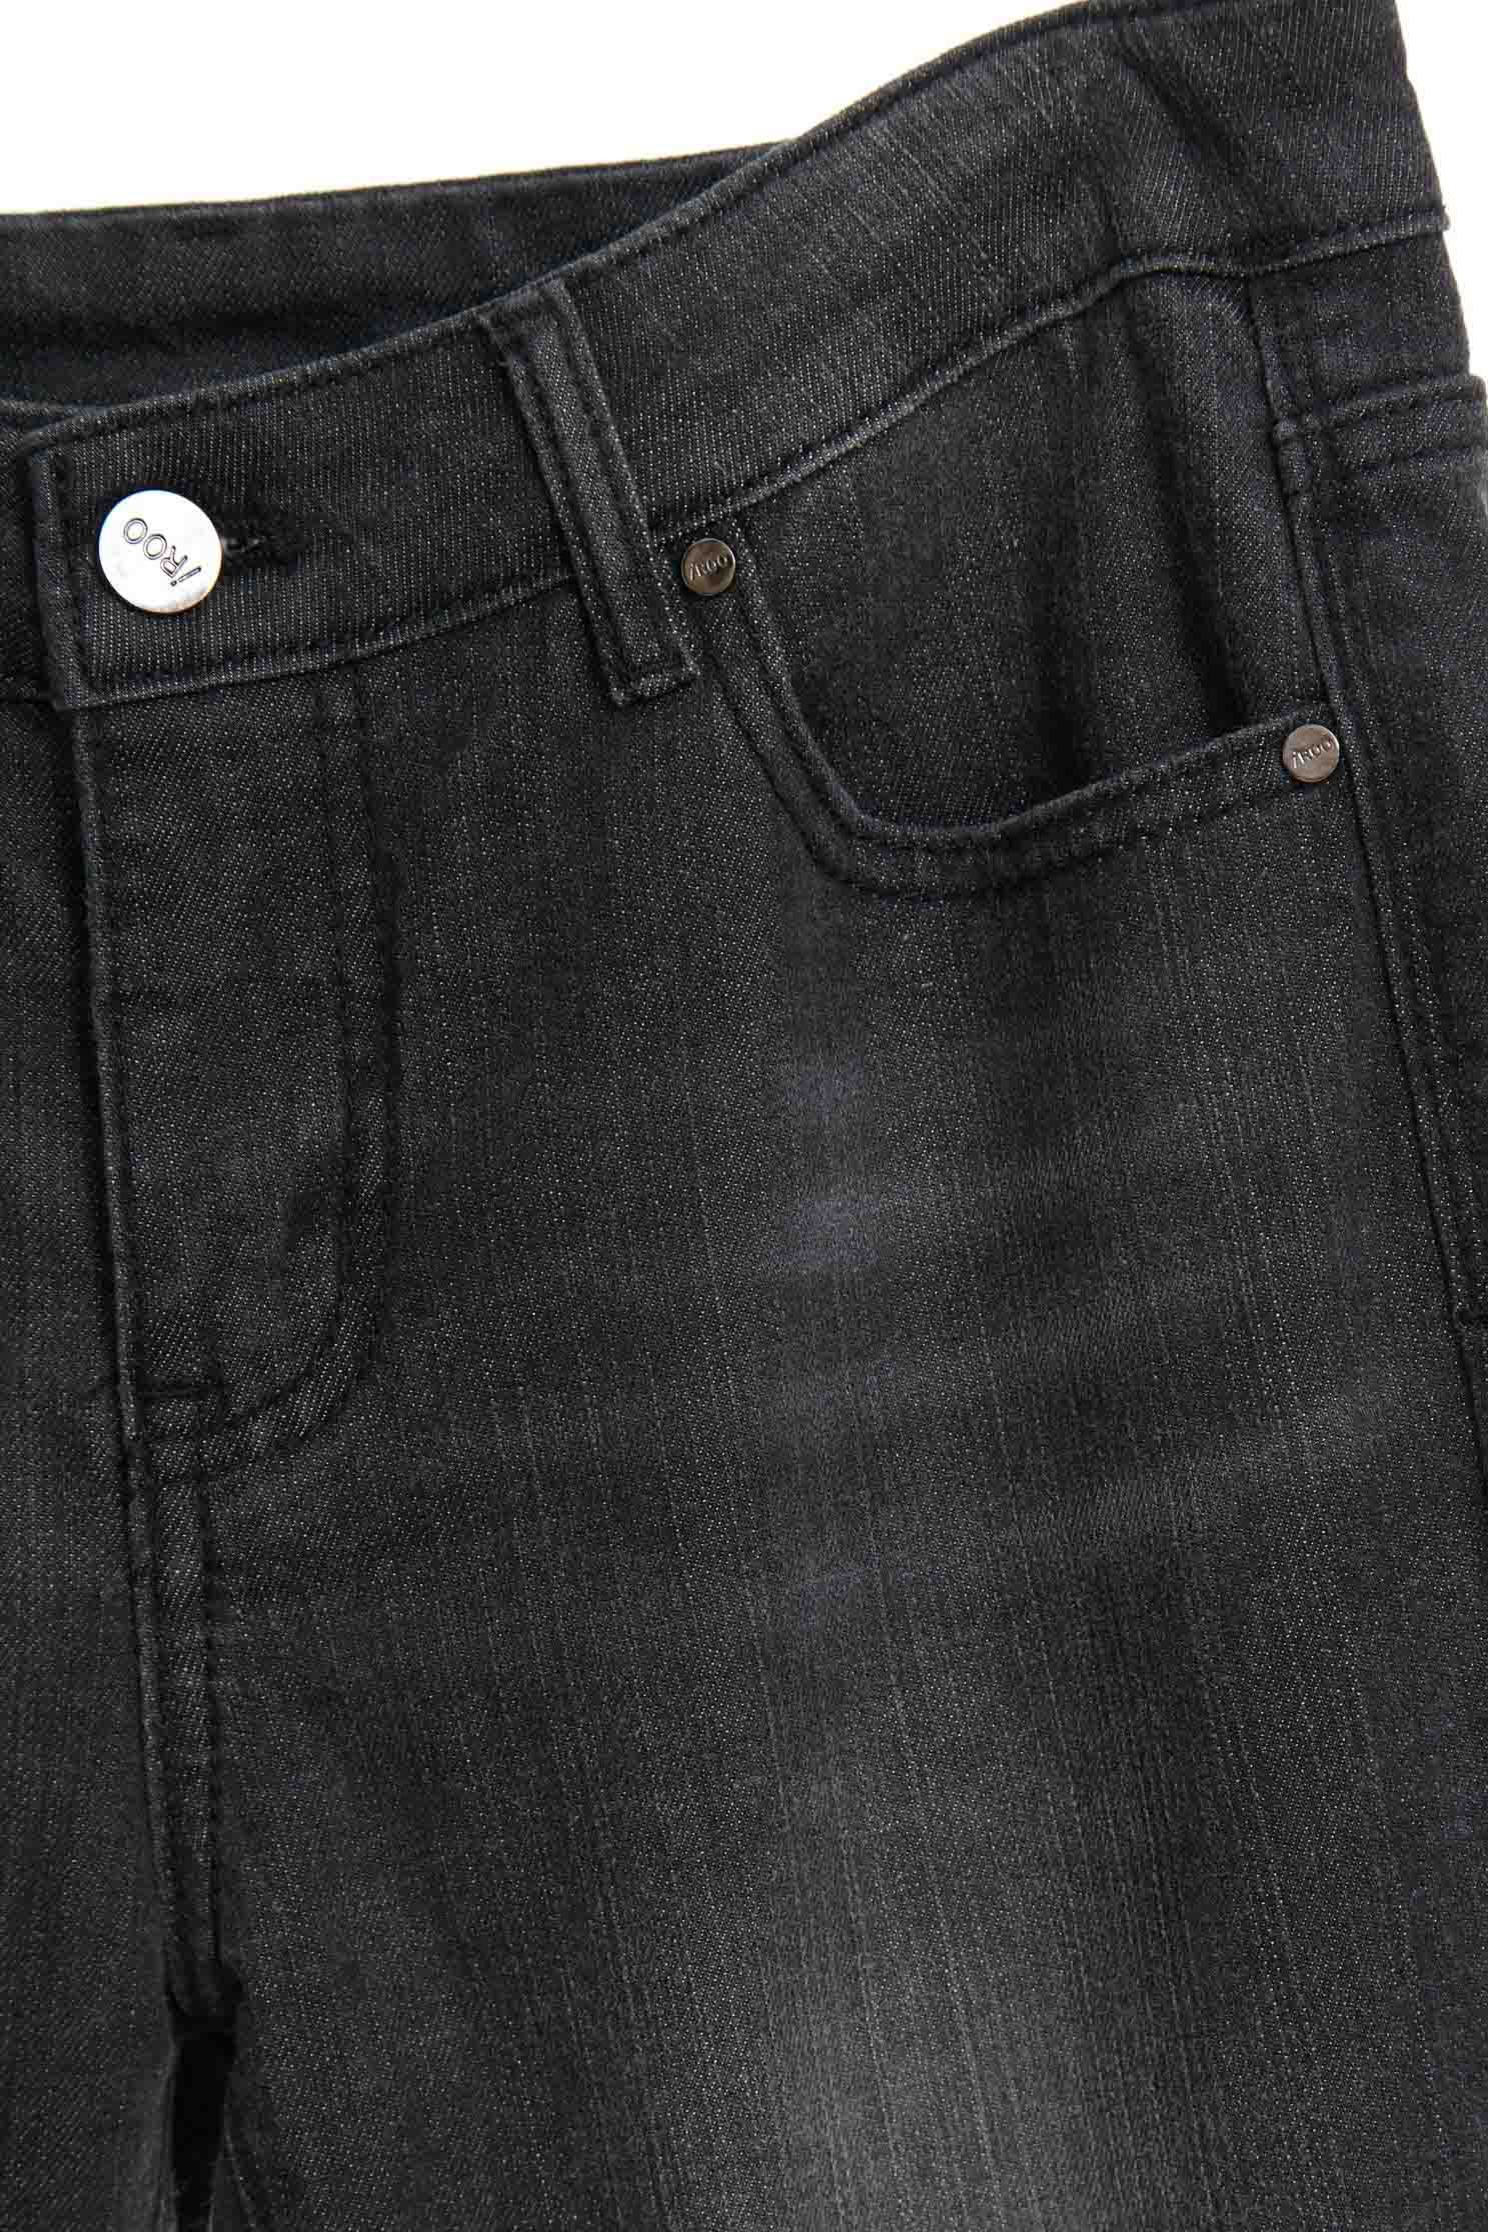 Brushed mid-waist jeans,tanning,newyearred,cowboy,jeans,sdenimtrousers,pants,thinpants,blackjeans,blacktrousers